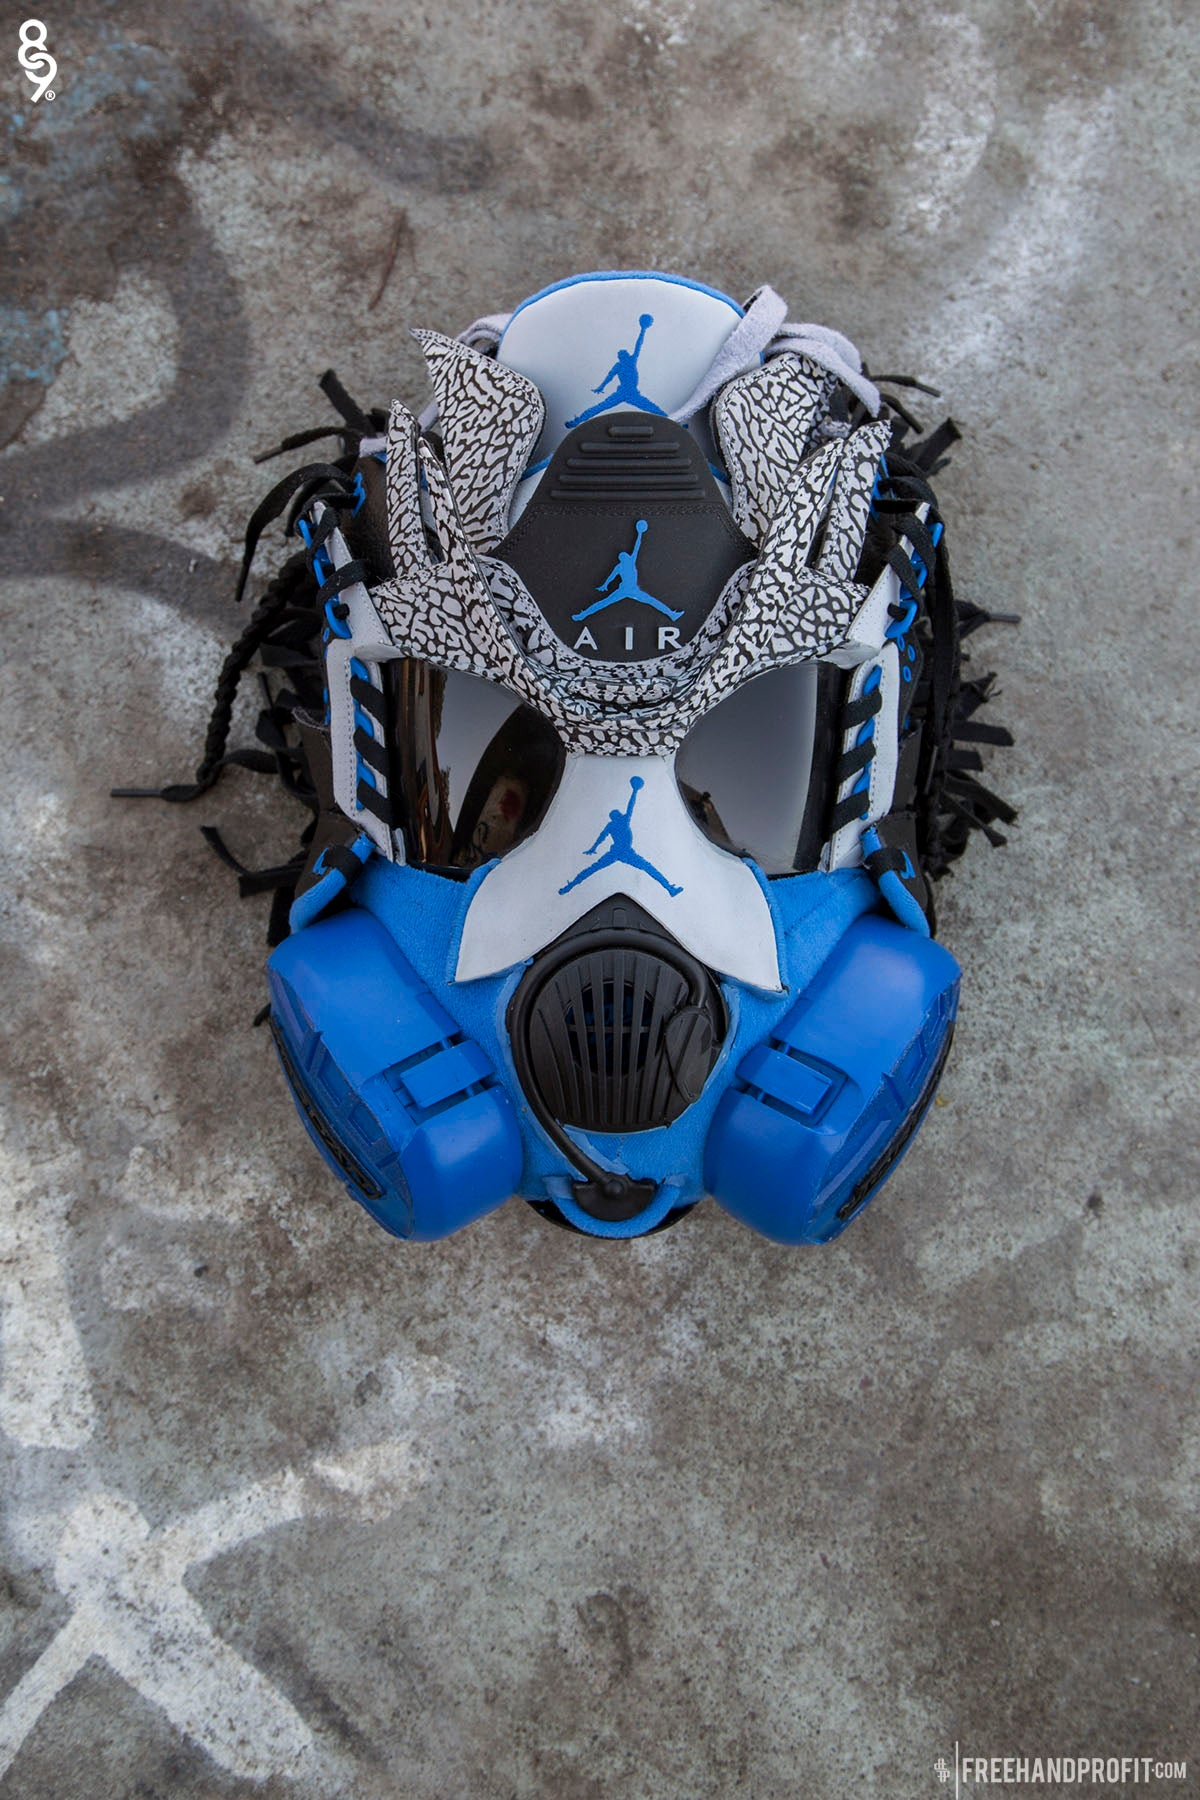 jordan sport blue 3 mask by freehand profit (2)